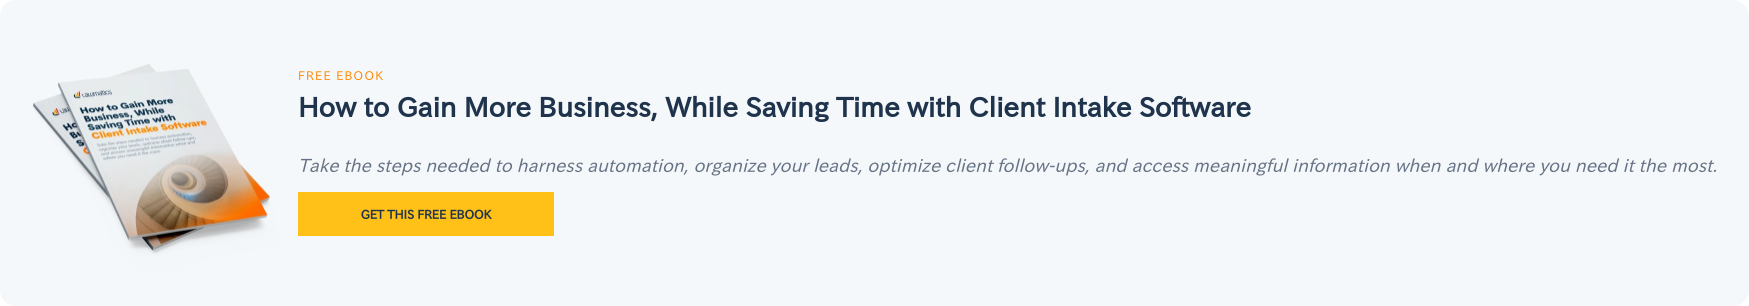 Free eBook  How to Gain More Business, While Saving Time with Client Intake Software  Take the steps needed to harness automation, organize your leads, optimize  client follow-ups, and access meaningful information when and where you need it  the most. Get this free ebook